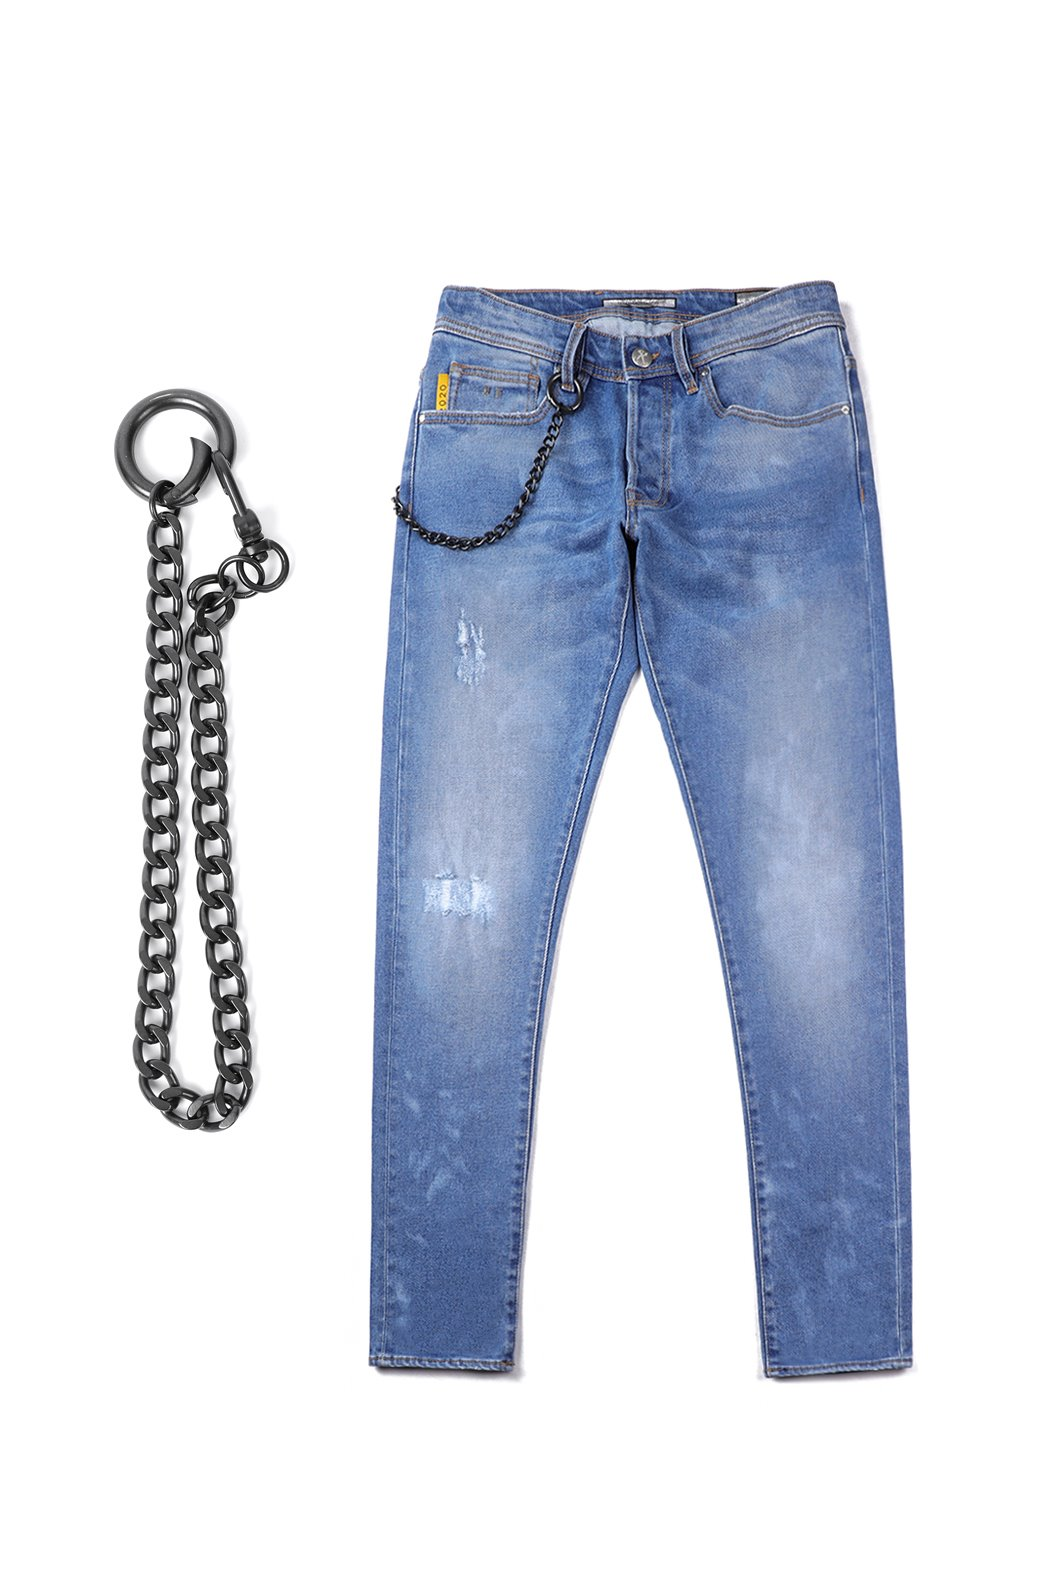 Tramarossa Black Leather Dot Stud Tab Denim Jeans-Blue소량한정수량